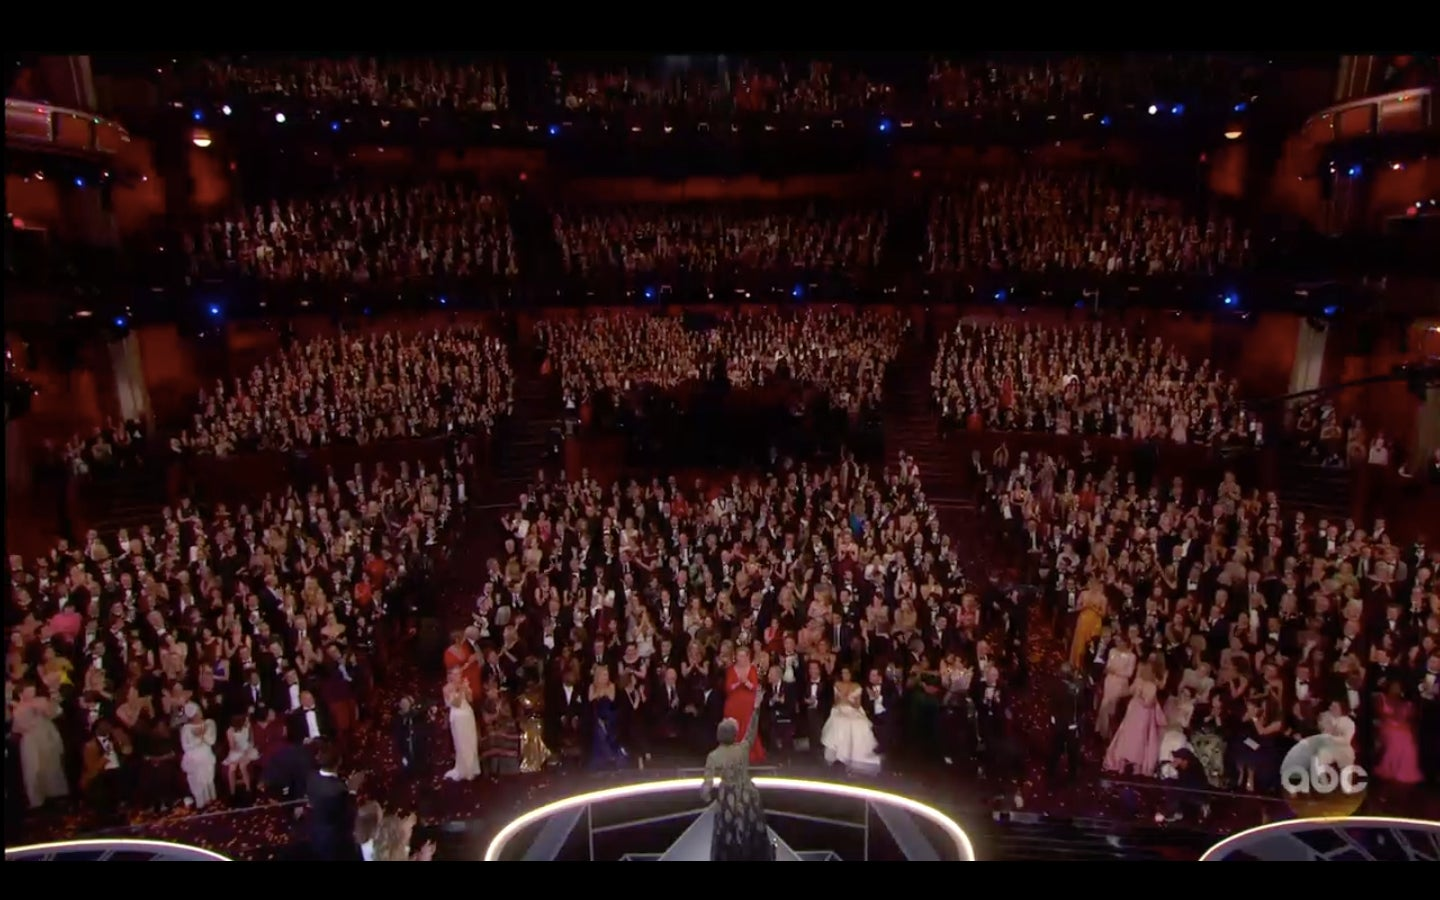 All the nominated women in the auditorium standing.